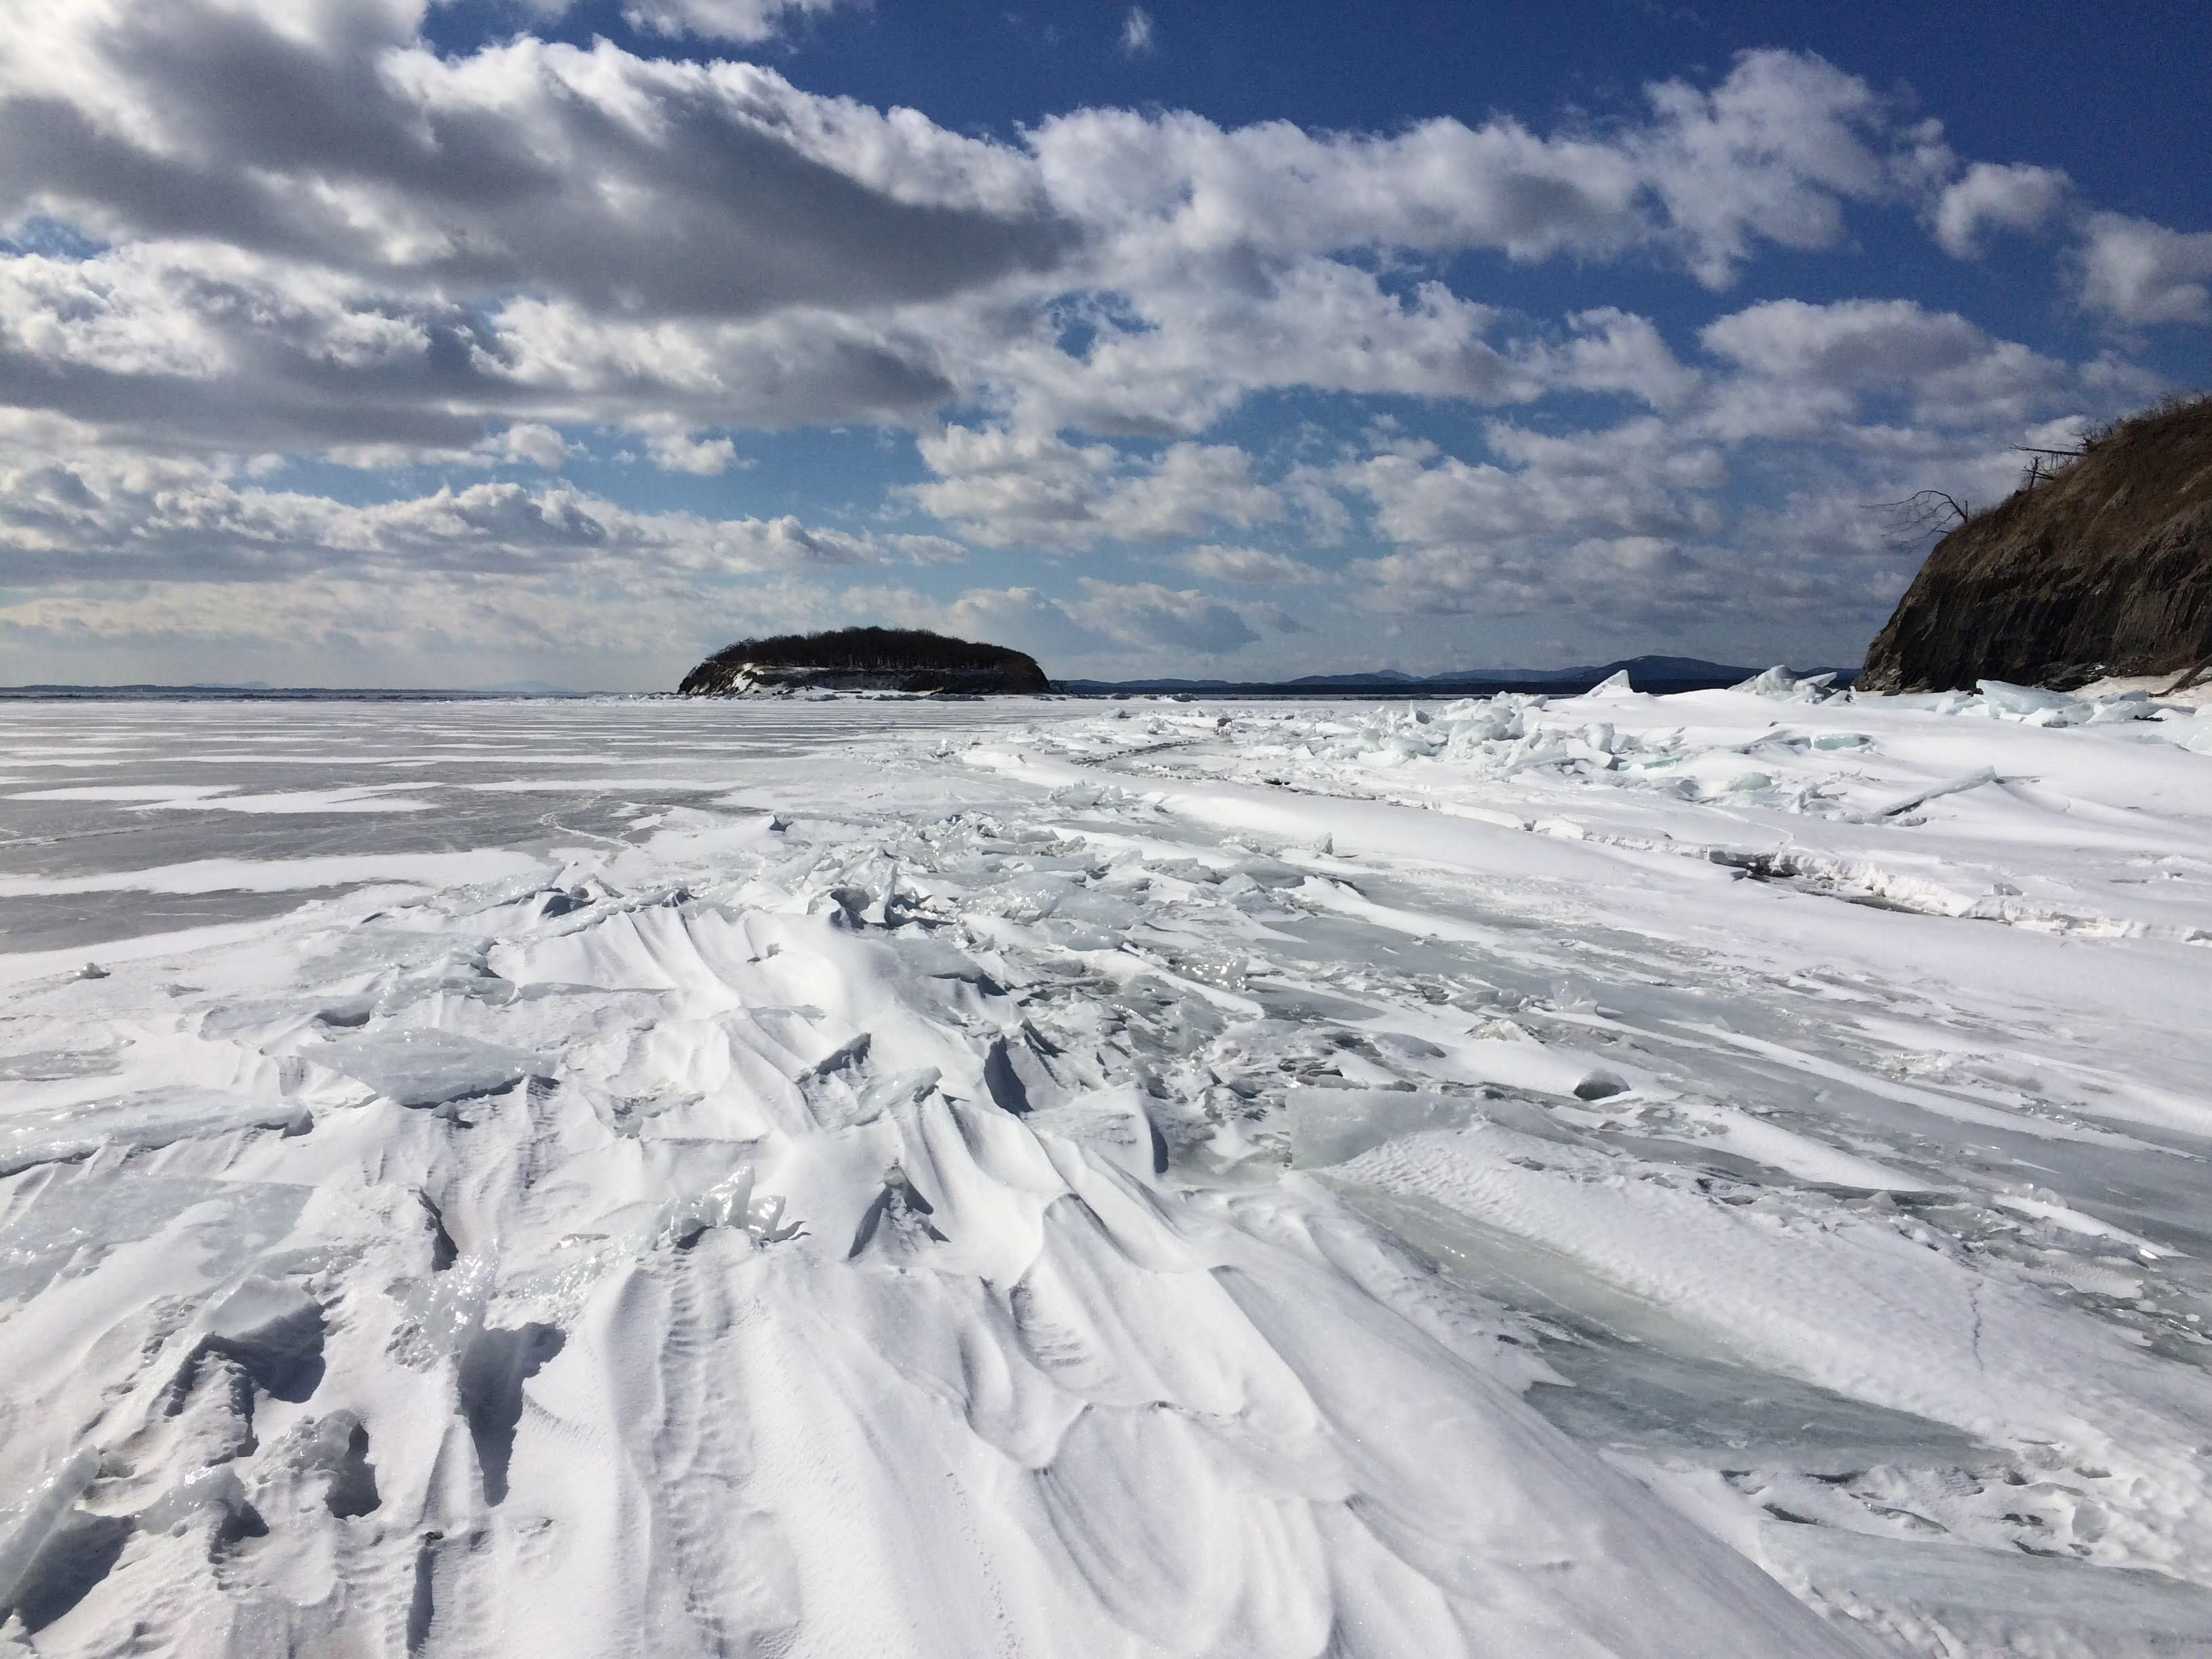 Wind-blown snow covers ice near the Four Brothers islands on Lake Champlain in this photograph taken in 2015.